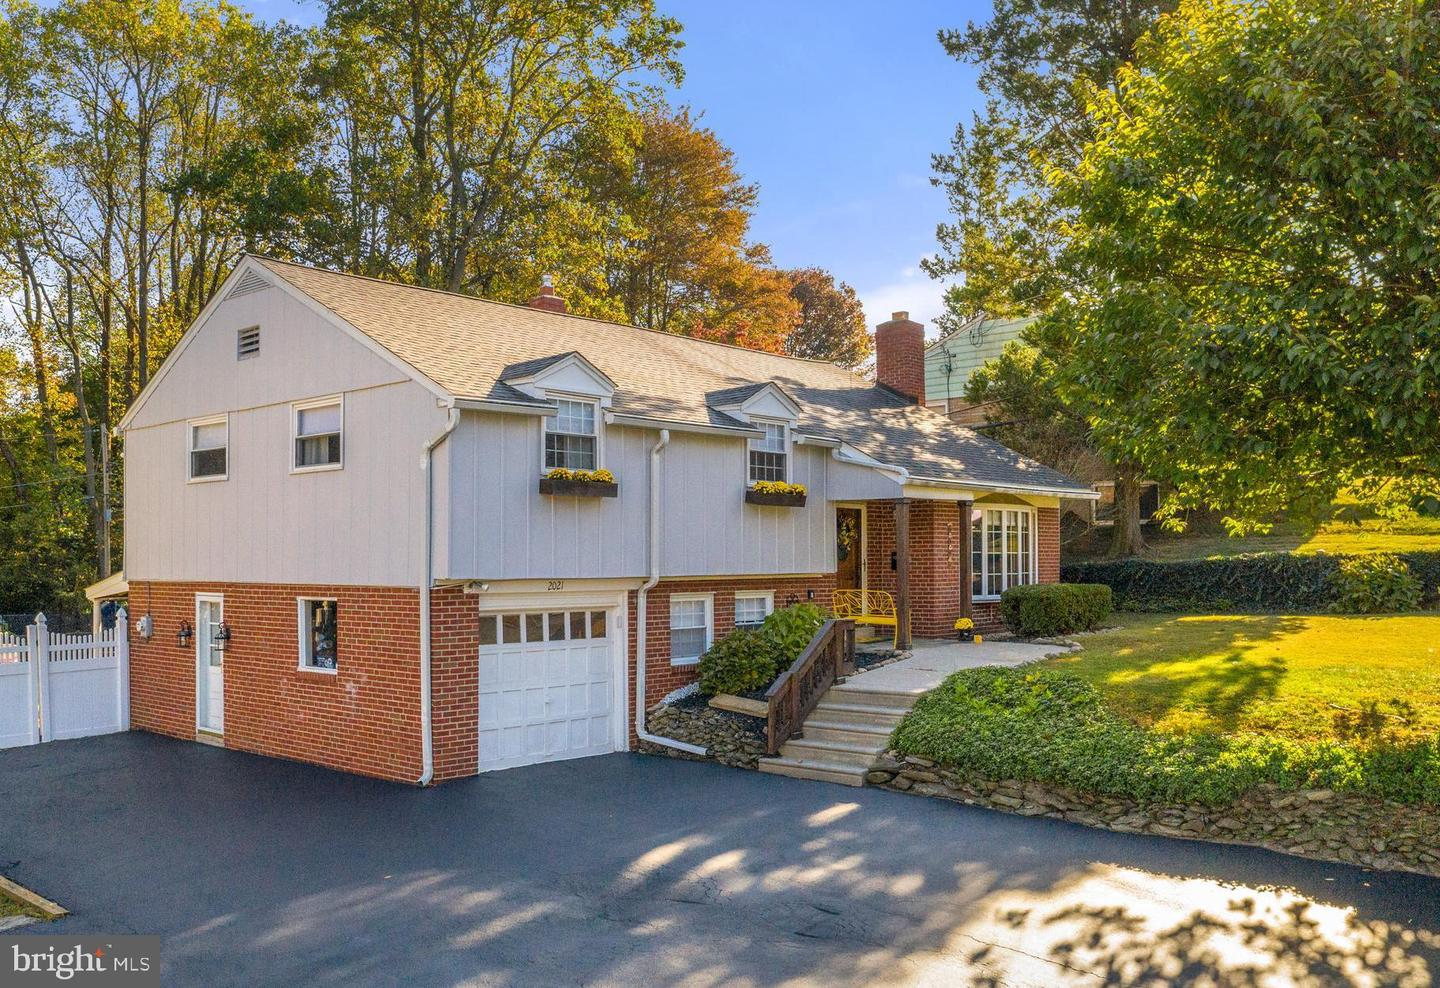 2021 Springhouse Road Broomall, PA 19008